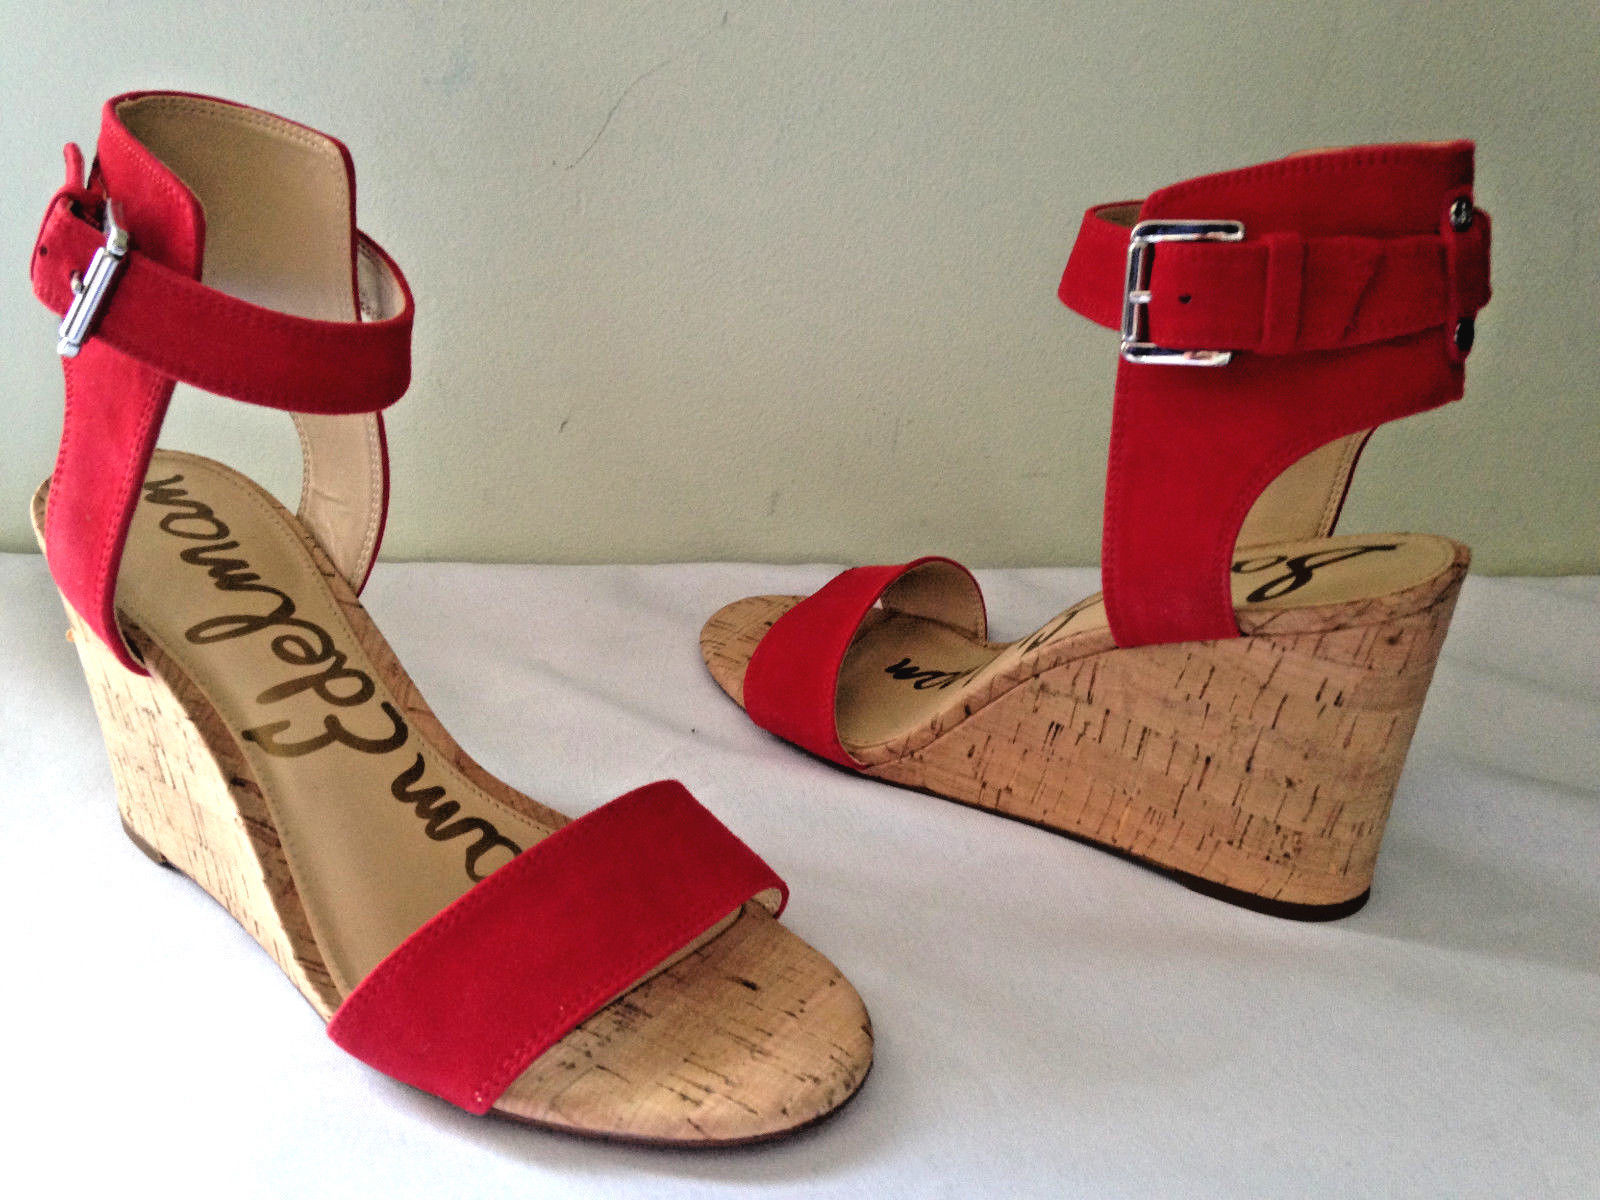 e5a07f0e0a4f NEW Sam Edelman Red Suede Leather WILLOW Wedge Open Toe Sandals 8.5 M  140